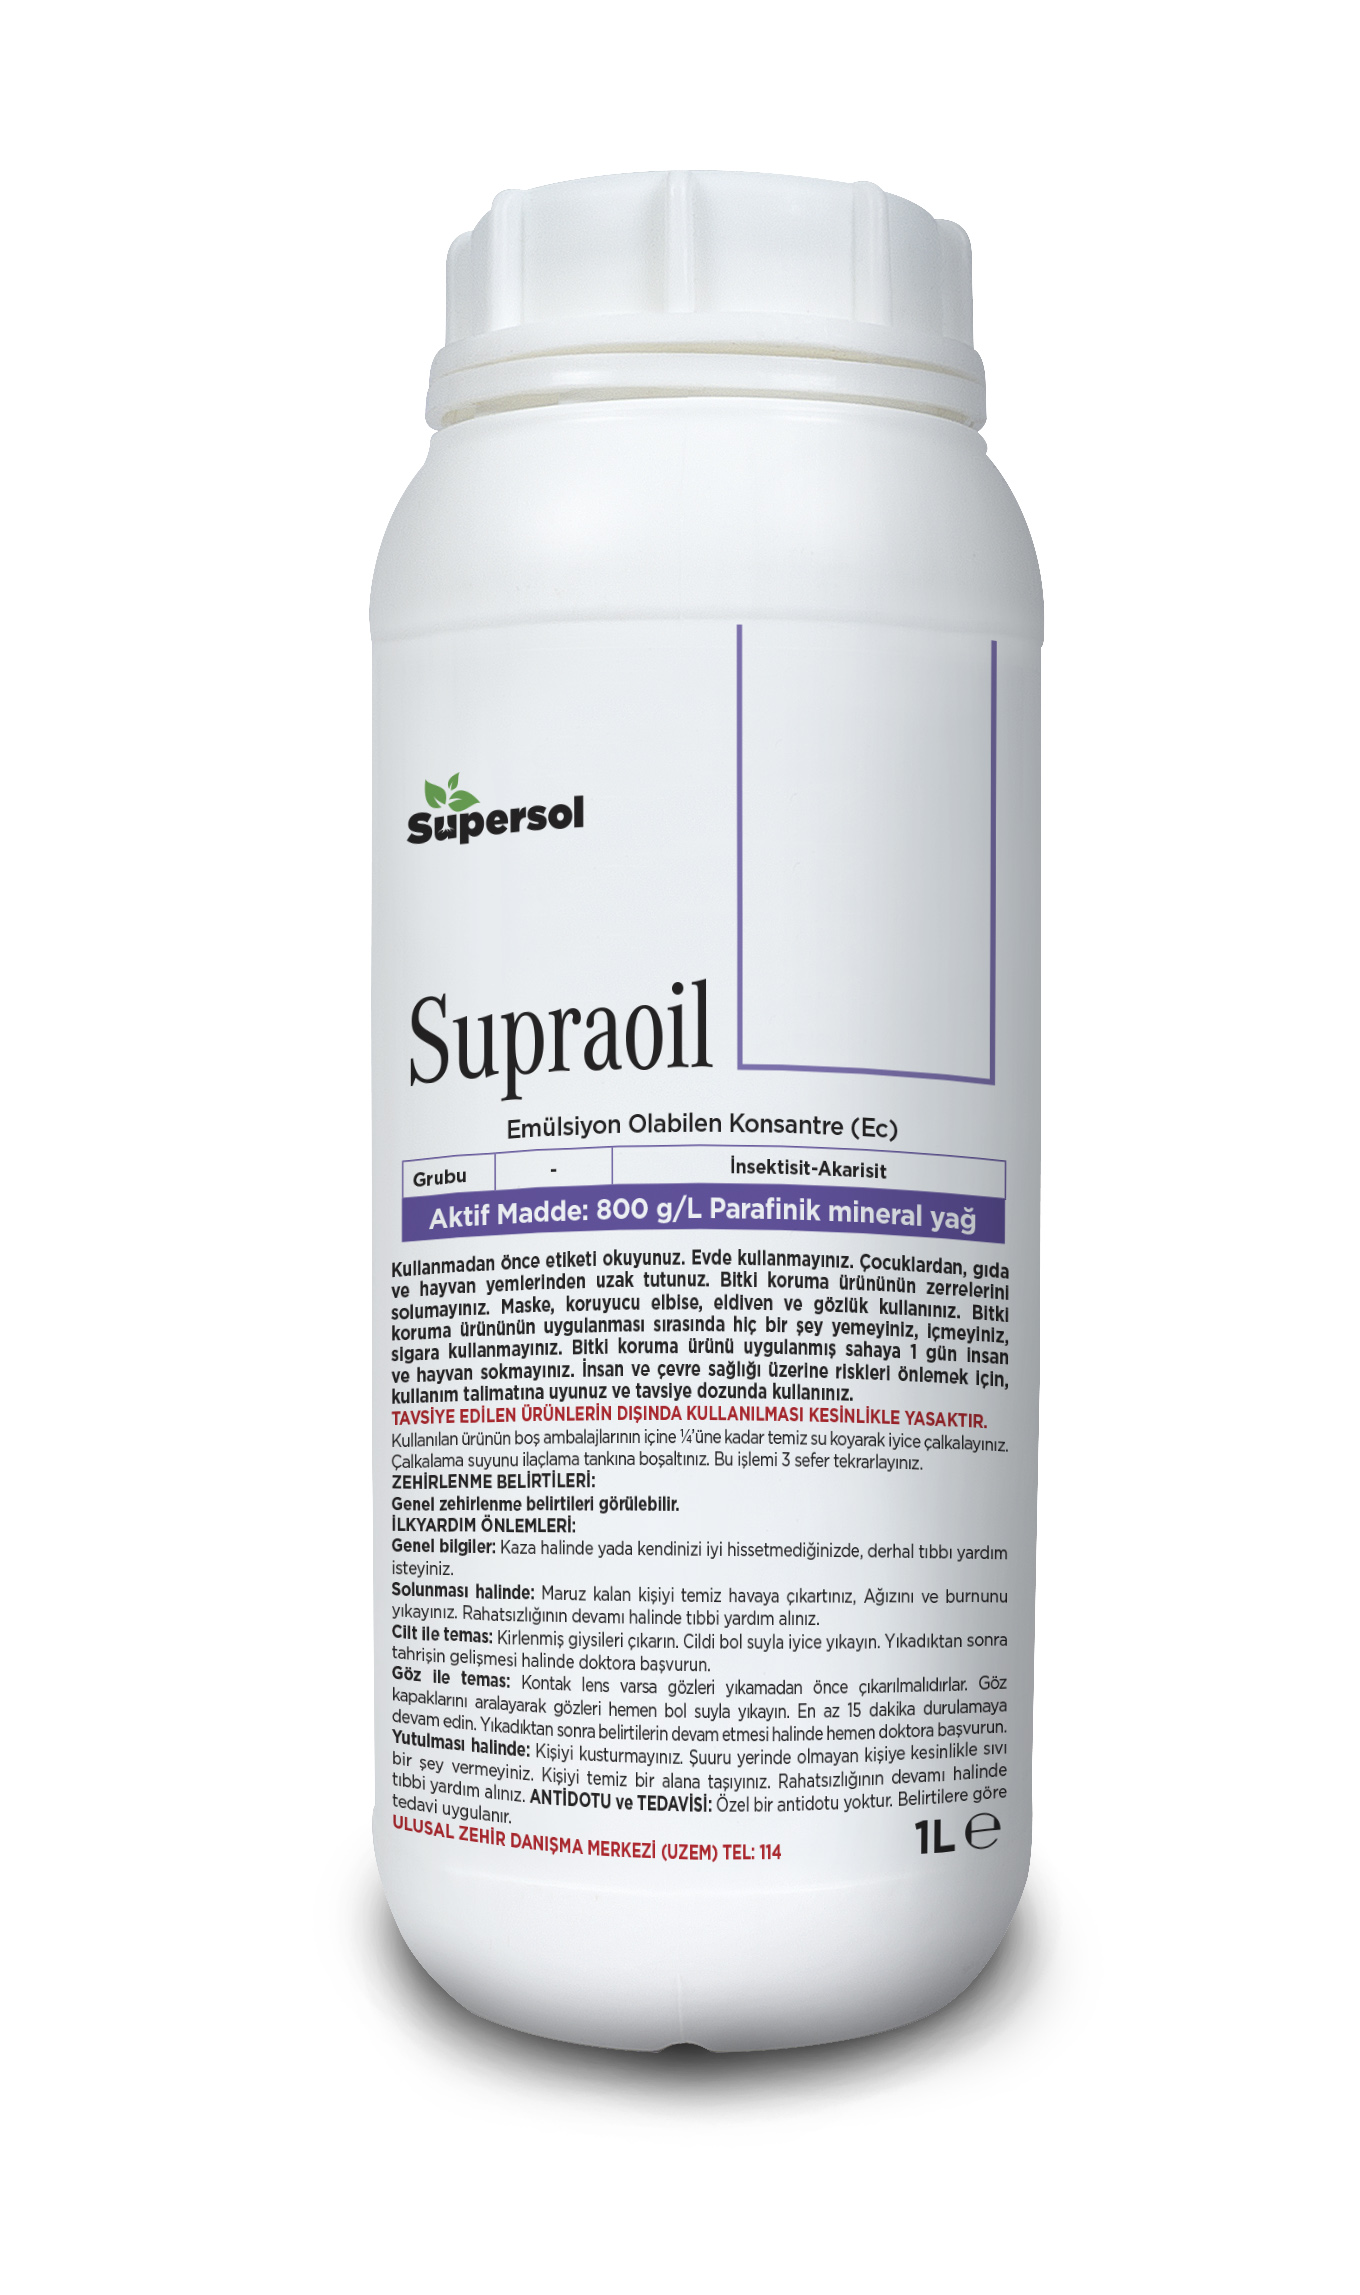 SUPRAOIL ( Plant Protection) 800 g/L Paraffinic mineral oil INSECTICIDE-ACARICIDE